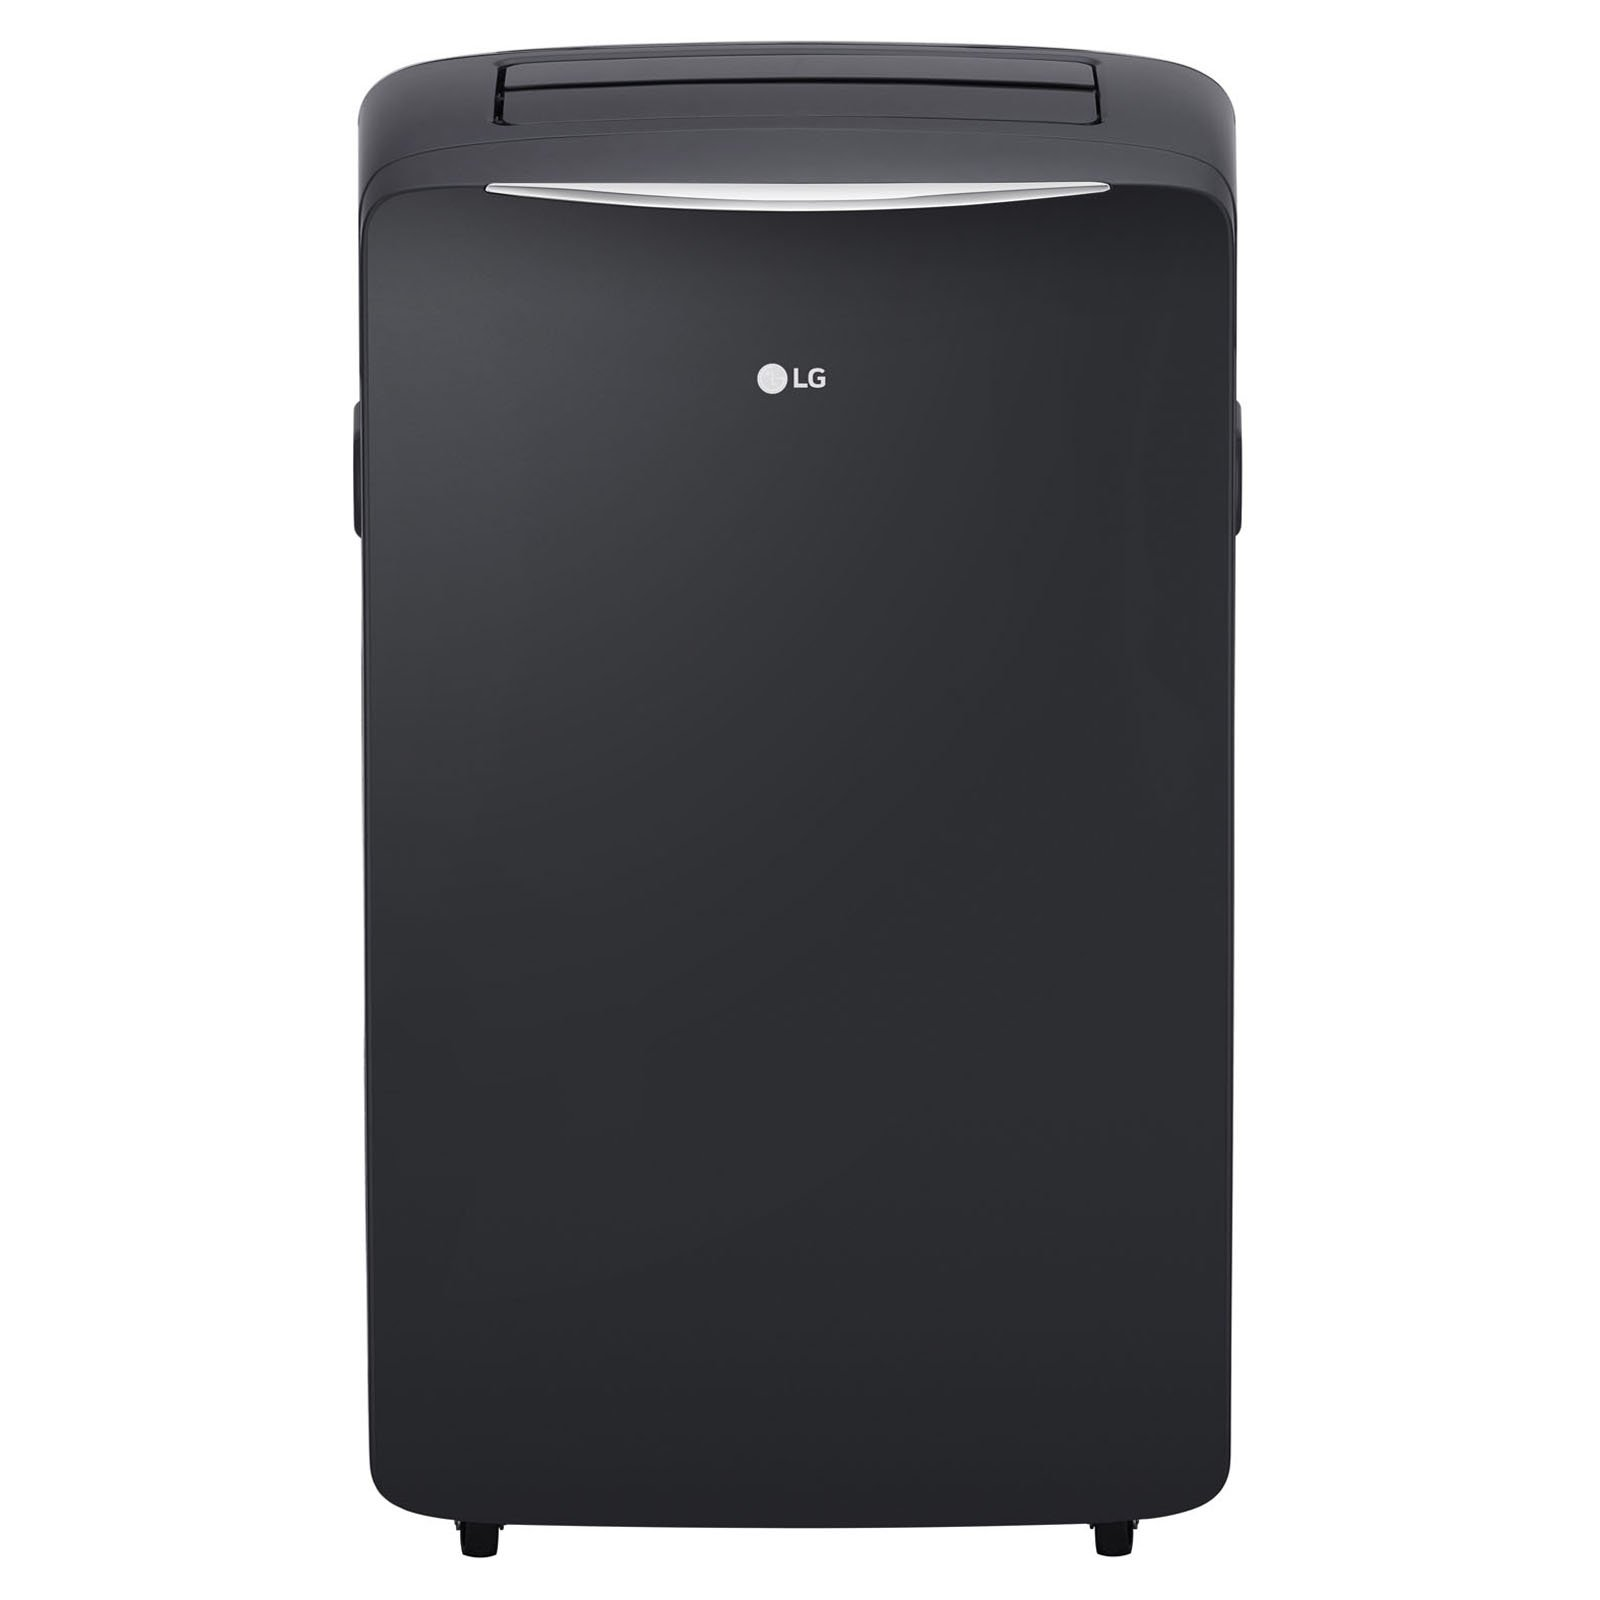 Portable Ac Home Depot Portable Air Conditioners Walmart